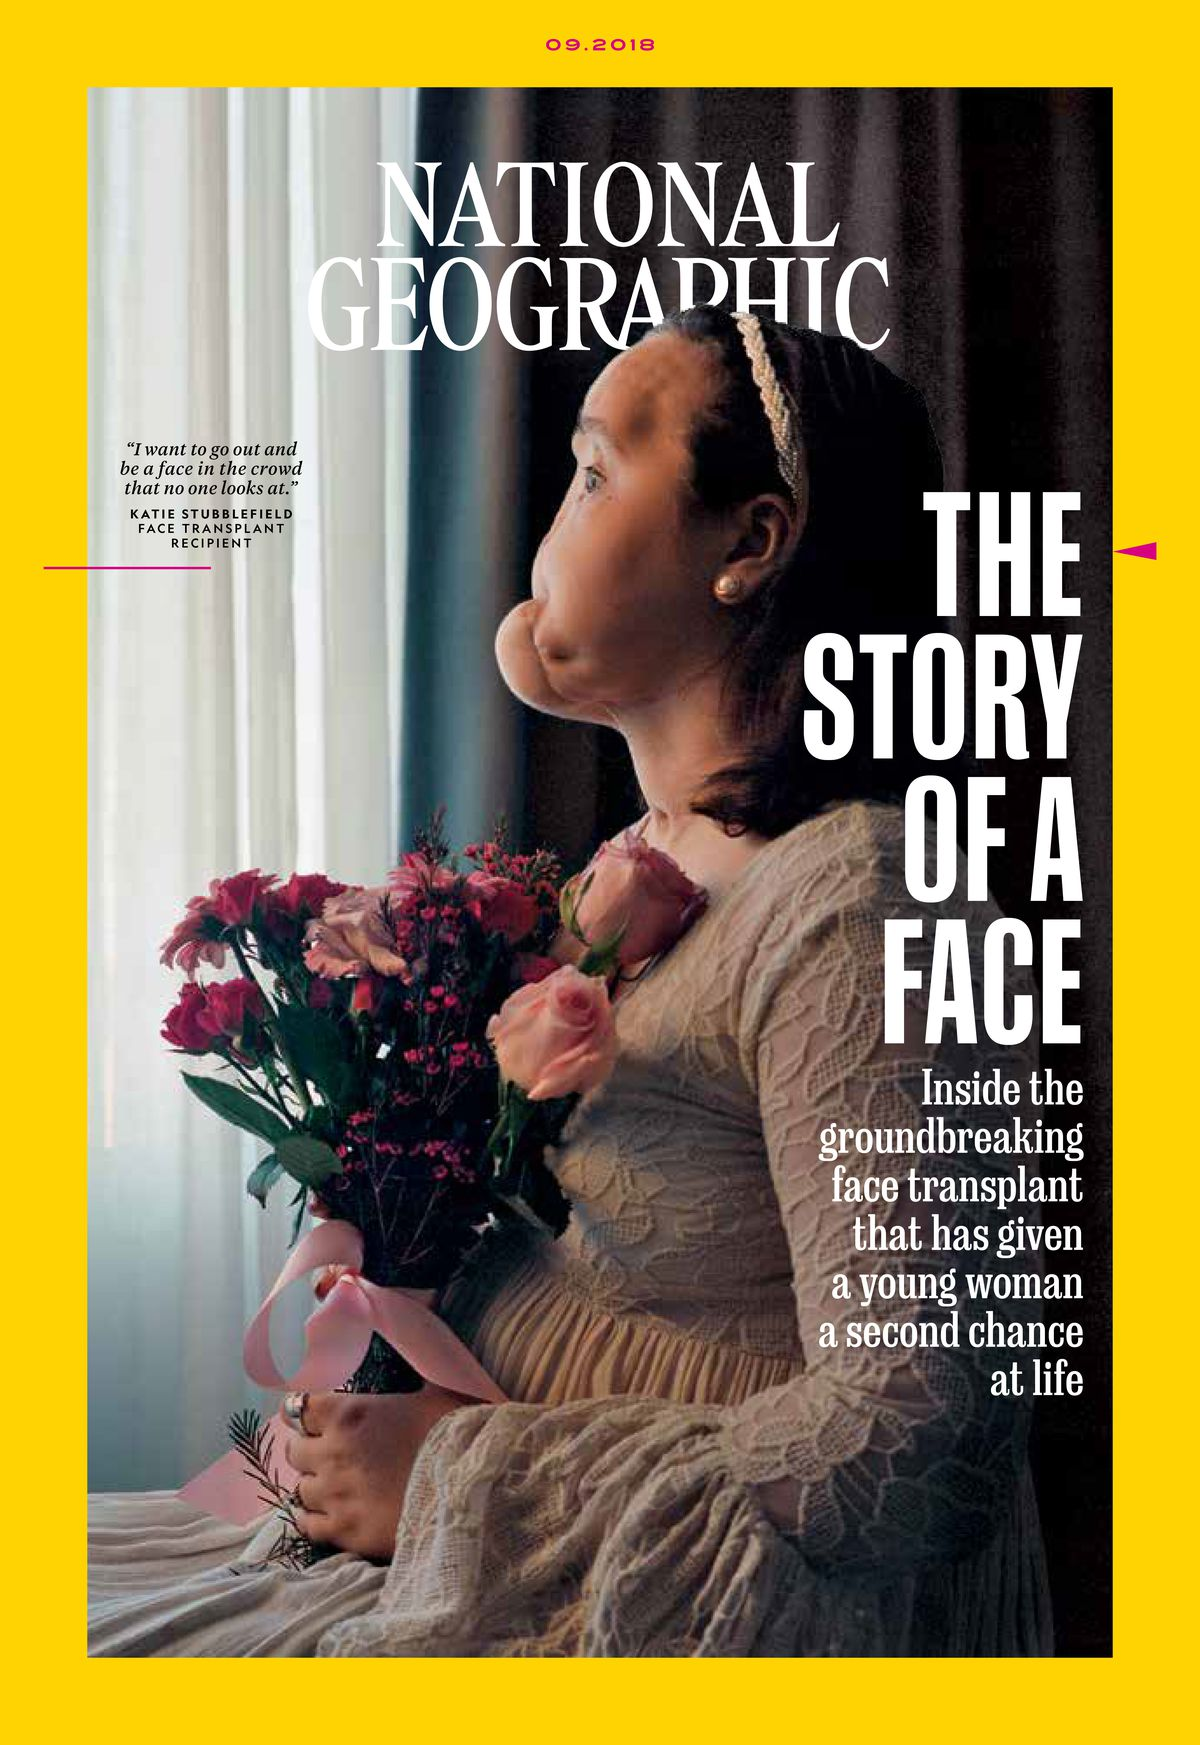 """The cover of the September issue of National Geographic features a pre-transplant portrait of Katie Stubblefield. The photographer wanted to show """"her inner beauty and her pride and determination."""" 